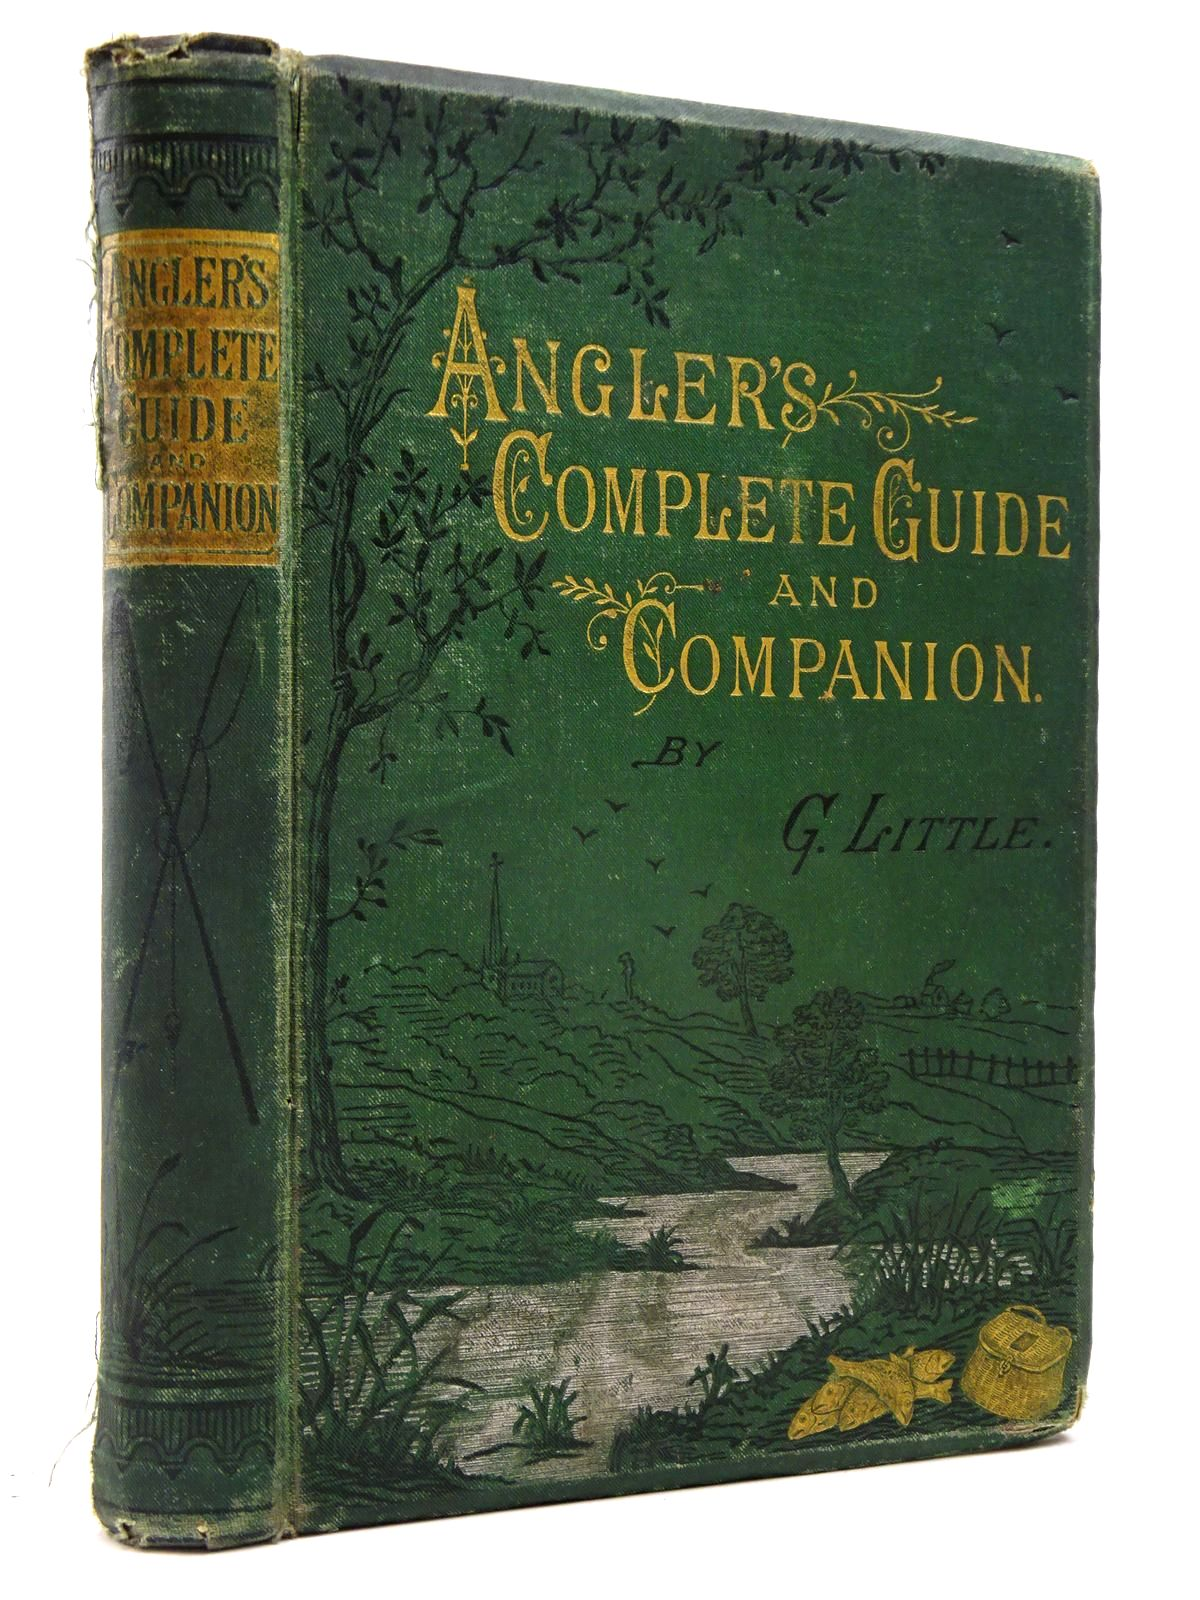 Photo of THE ANGLER'S COMPLETE GUIDE AND COMPANION written by Little, G. published by G. Little (STOCK CODE: 2130569)  for sale by Stella & Rose's Books